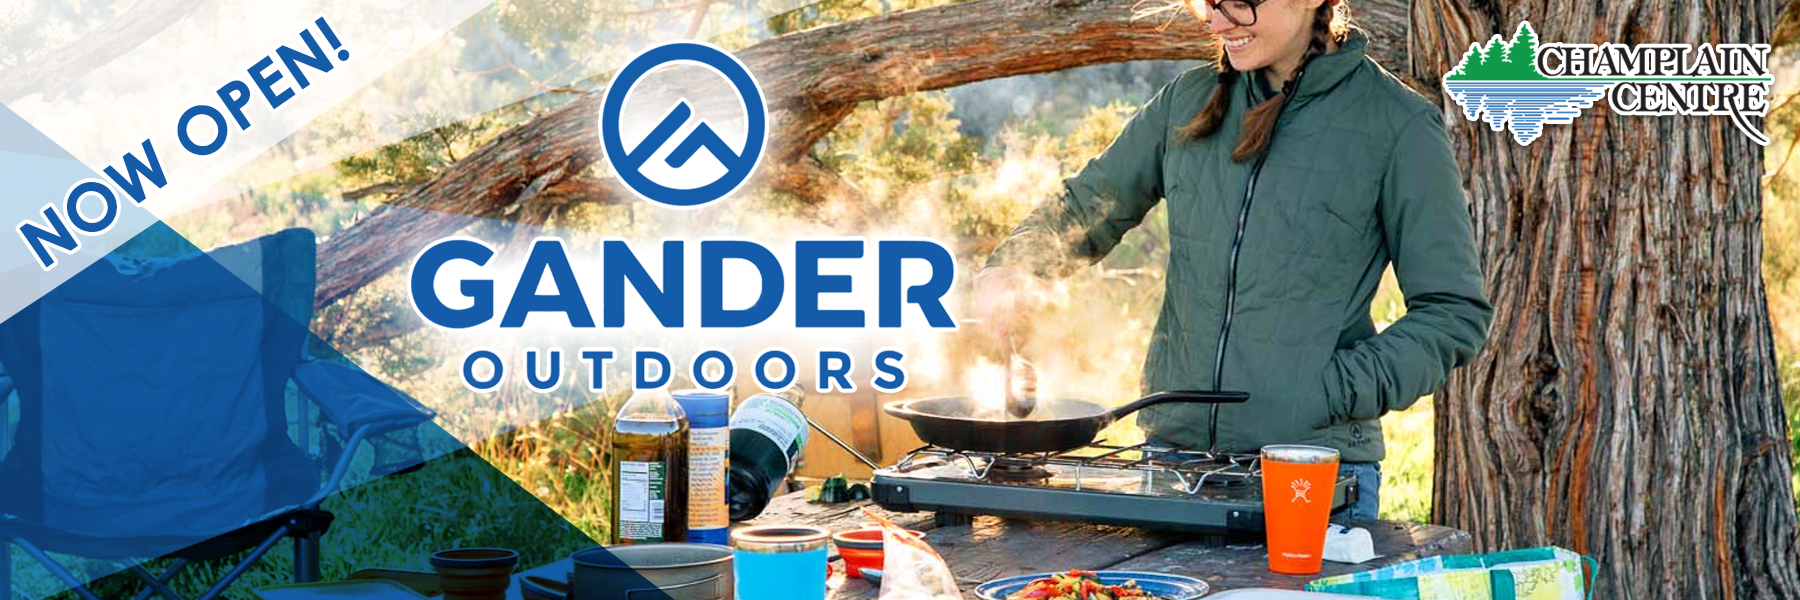 Champlain GanderOutdoors Web Ad OPEN